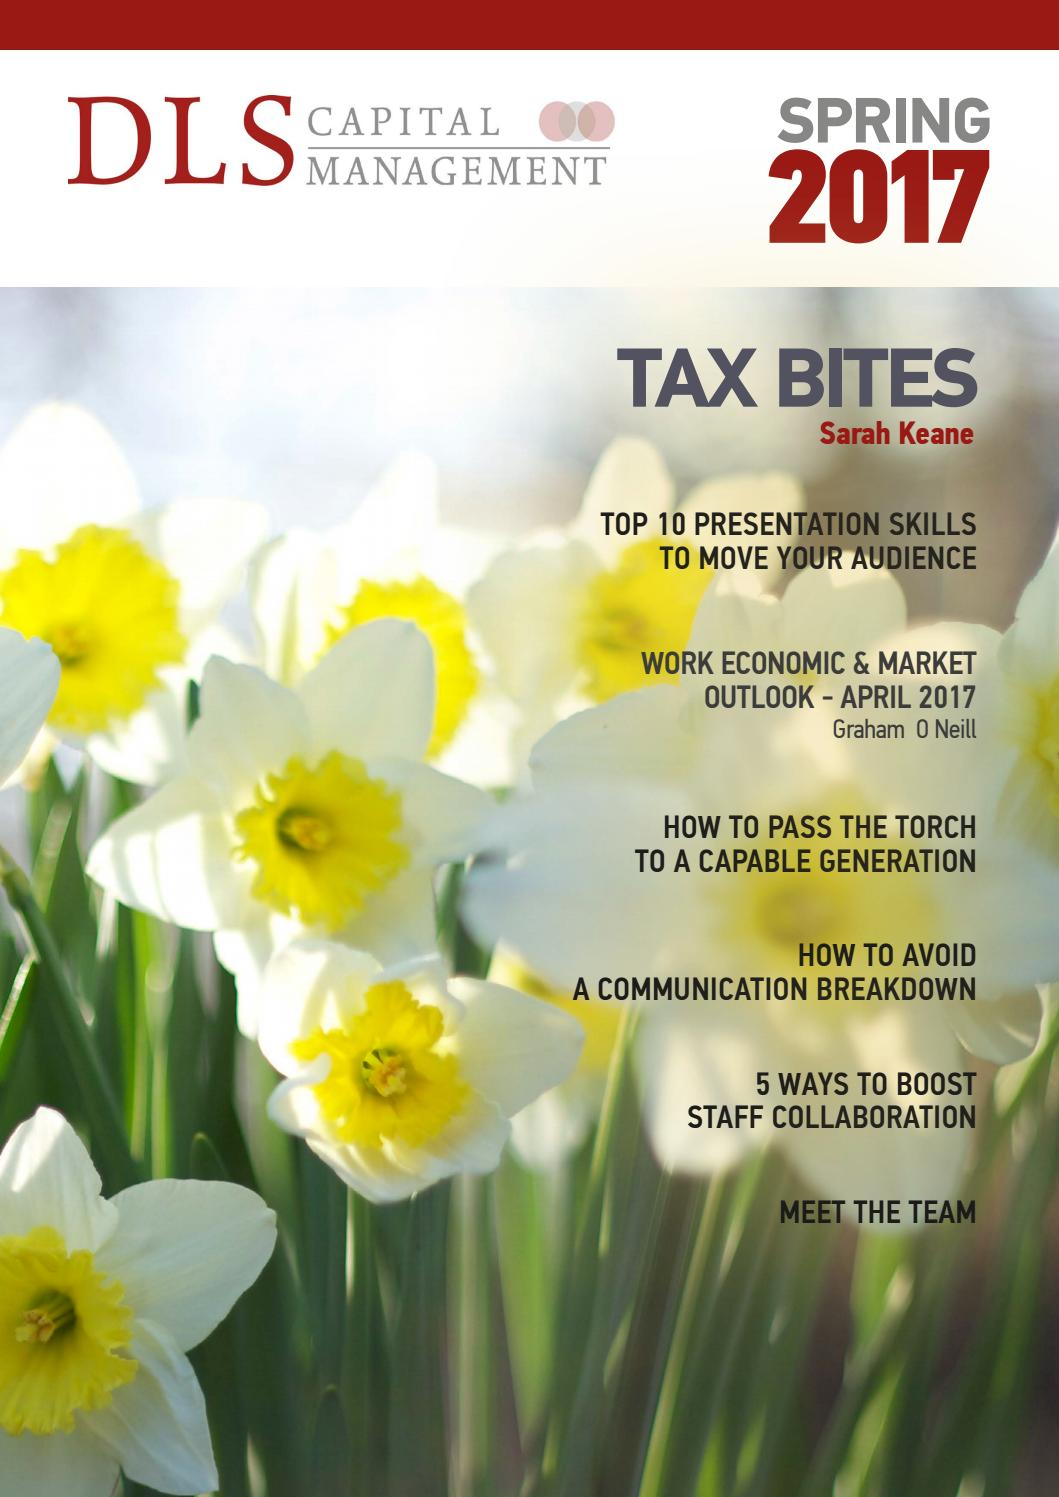 DLS Capital Manager Spring 2017 by publications - issuu